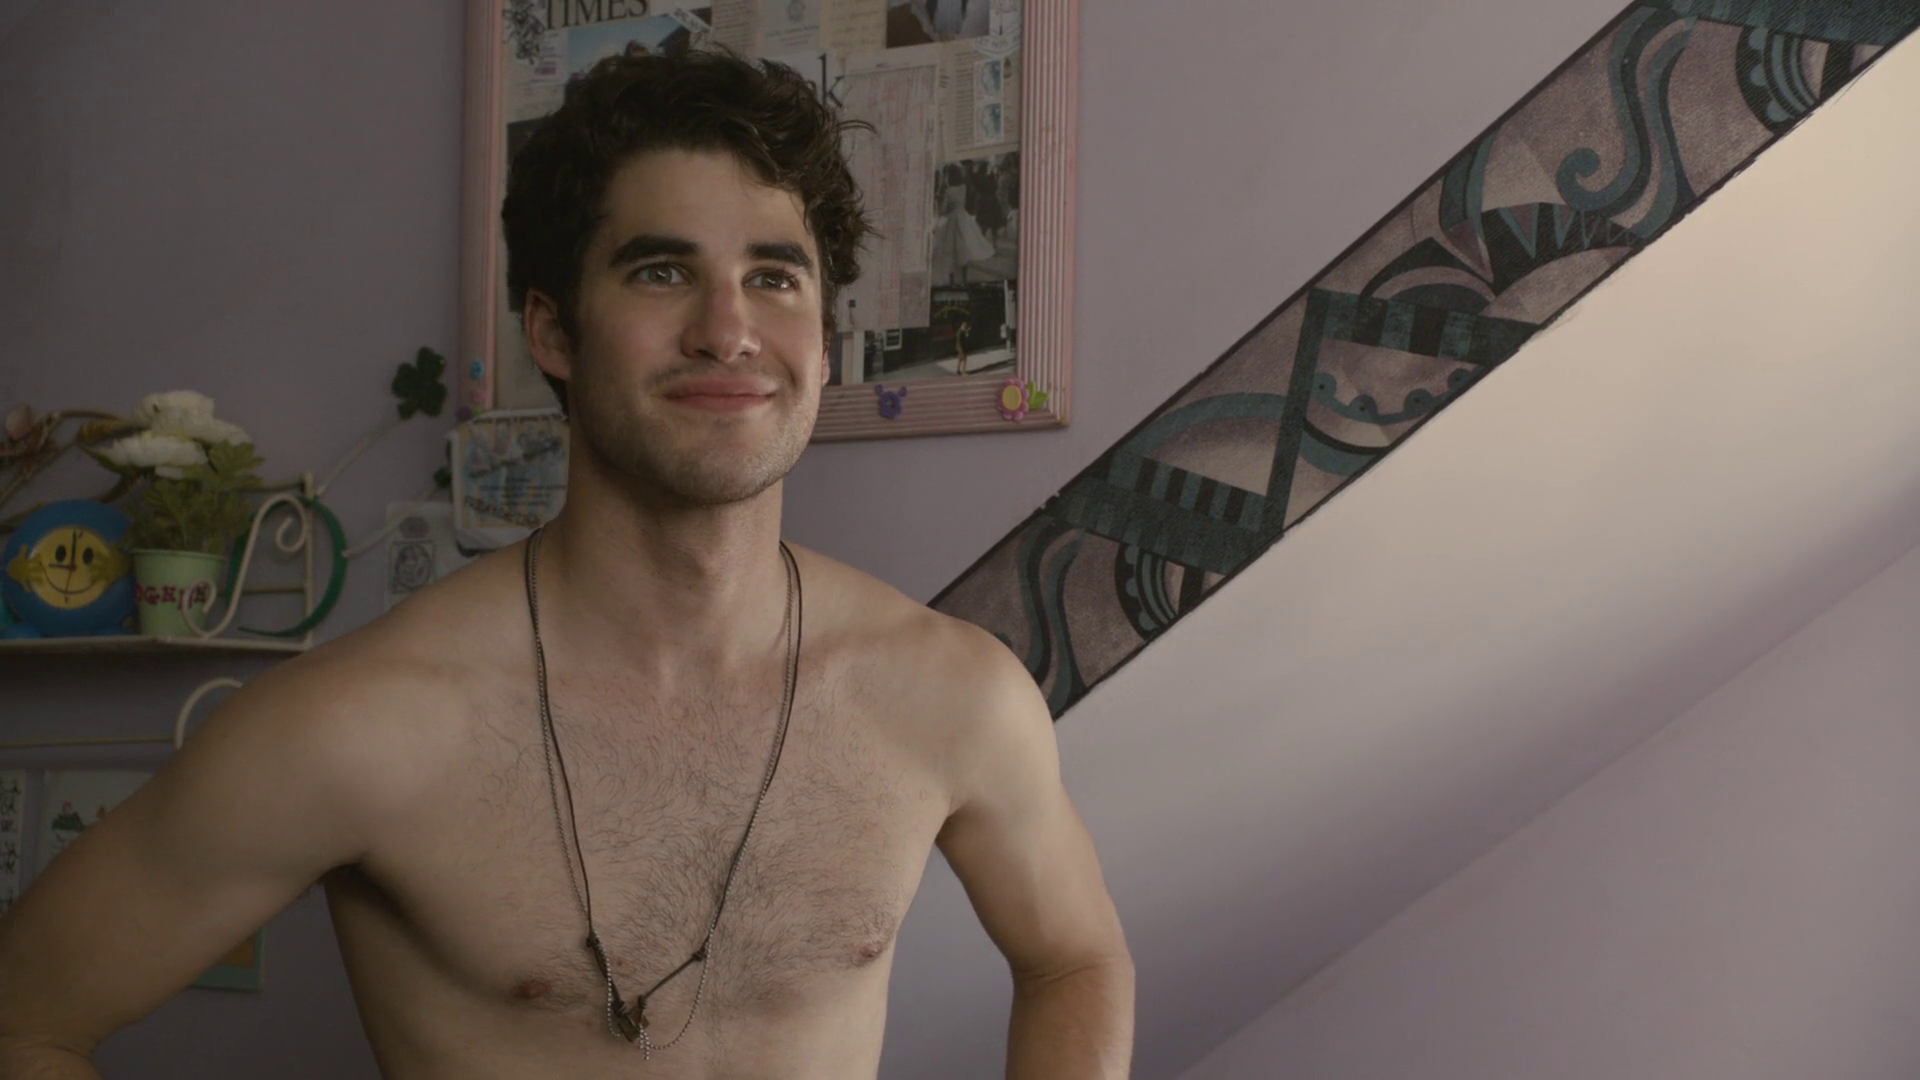 Darren Criss as Lee shirtless in Girl Most Likely